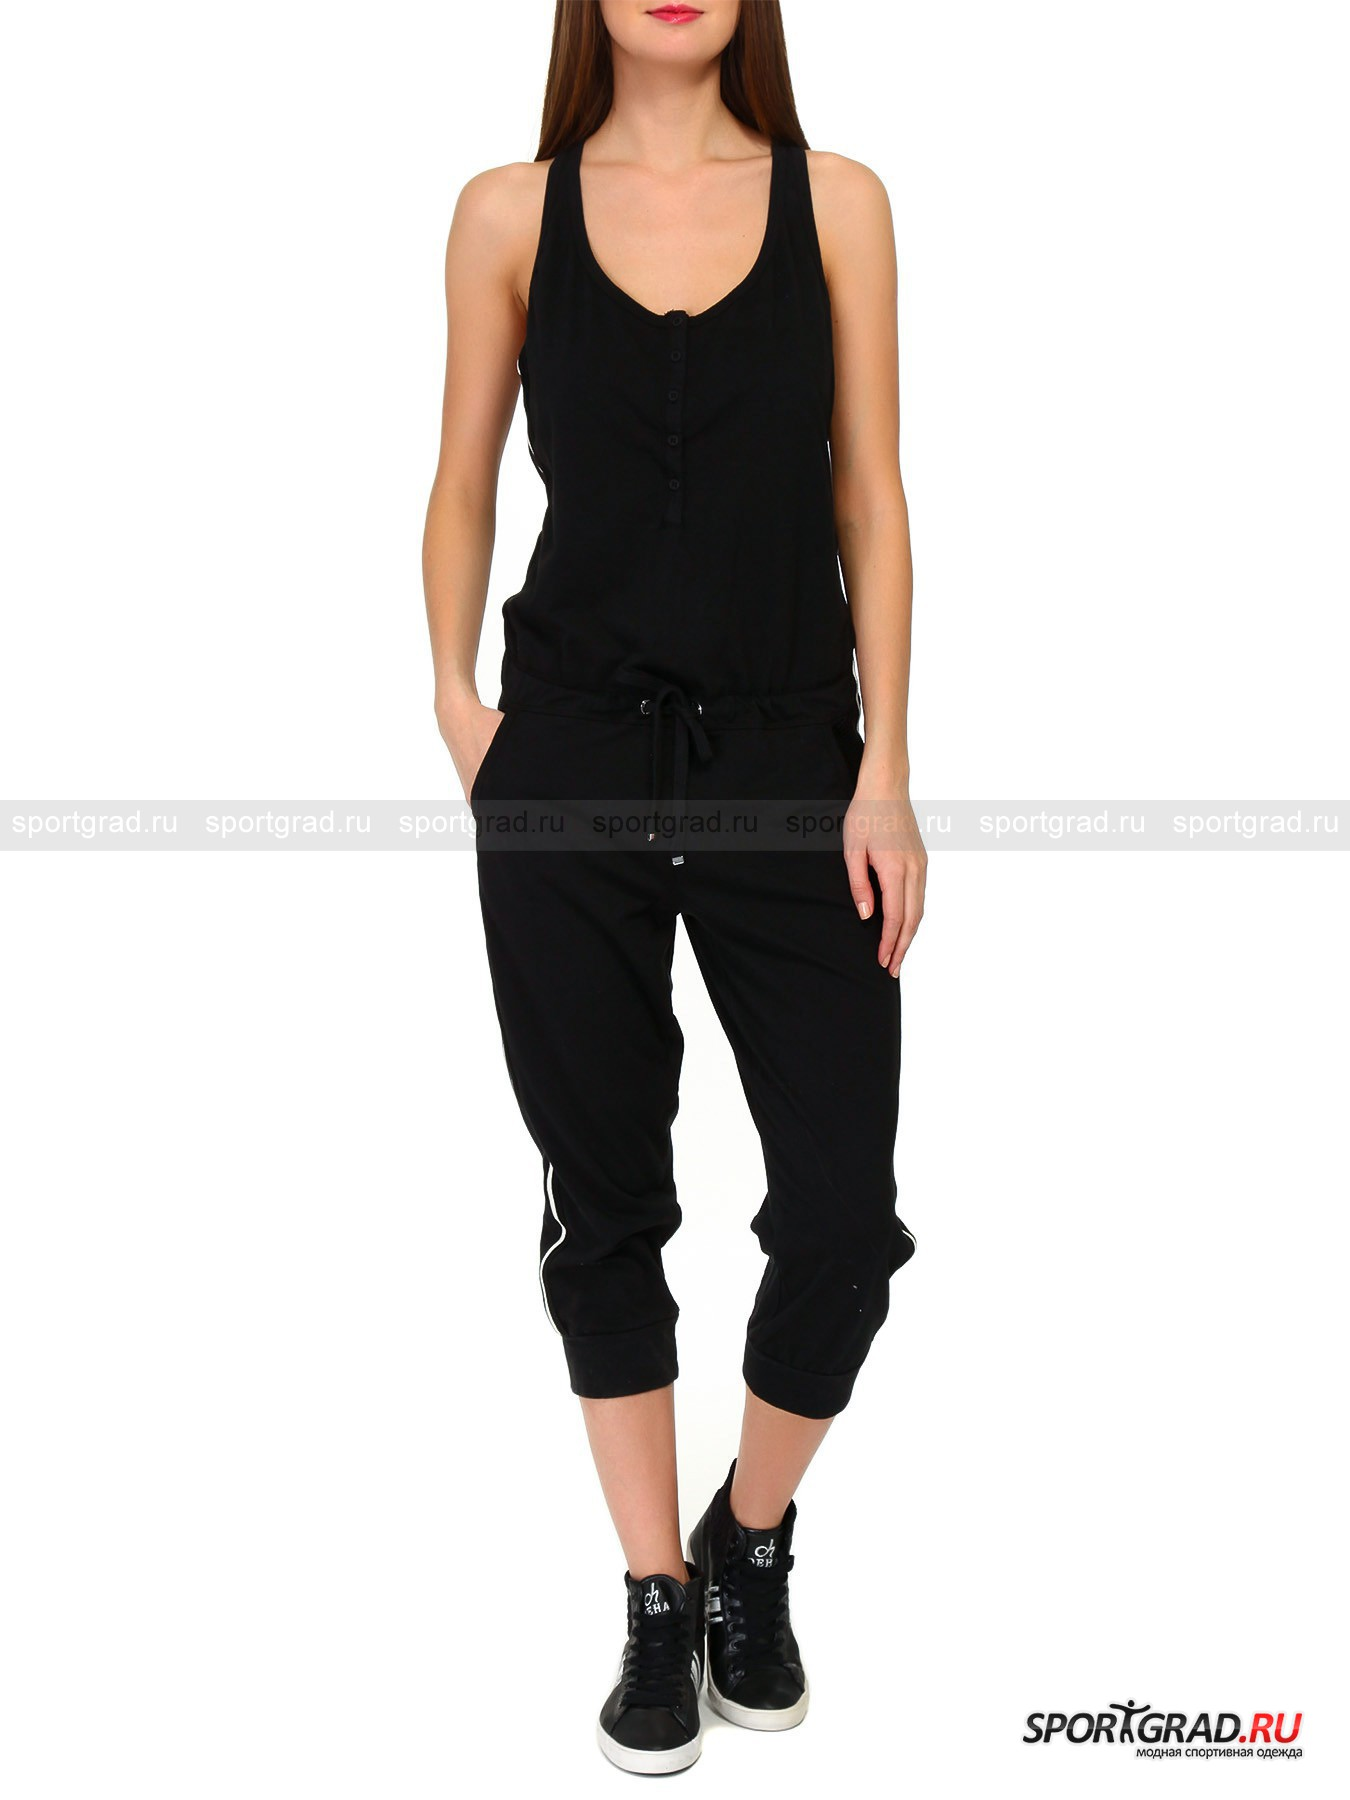 ���������� ������� MEETING JUMP SUIT